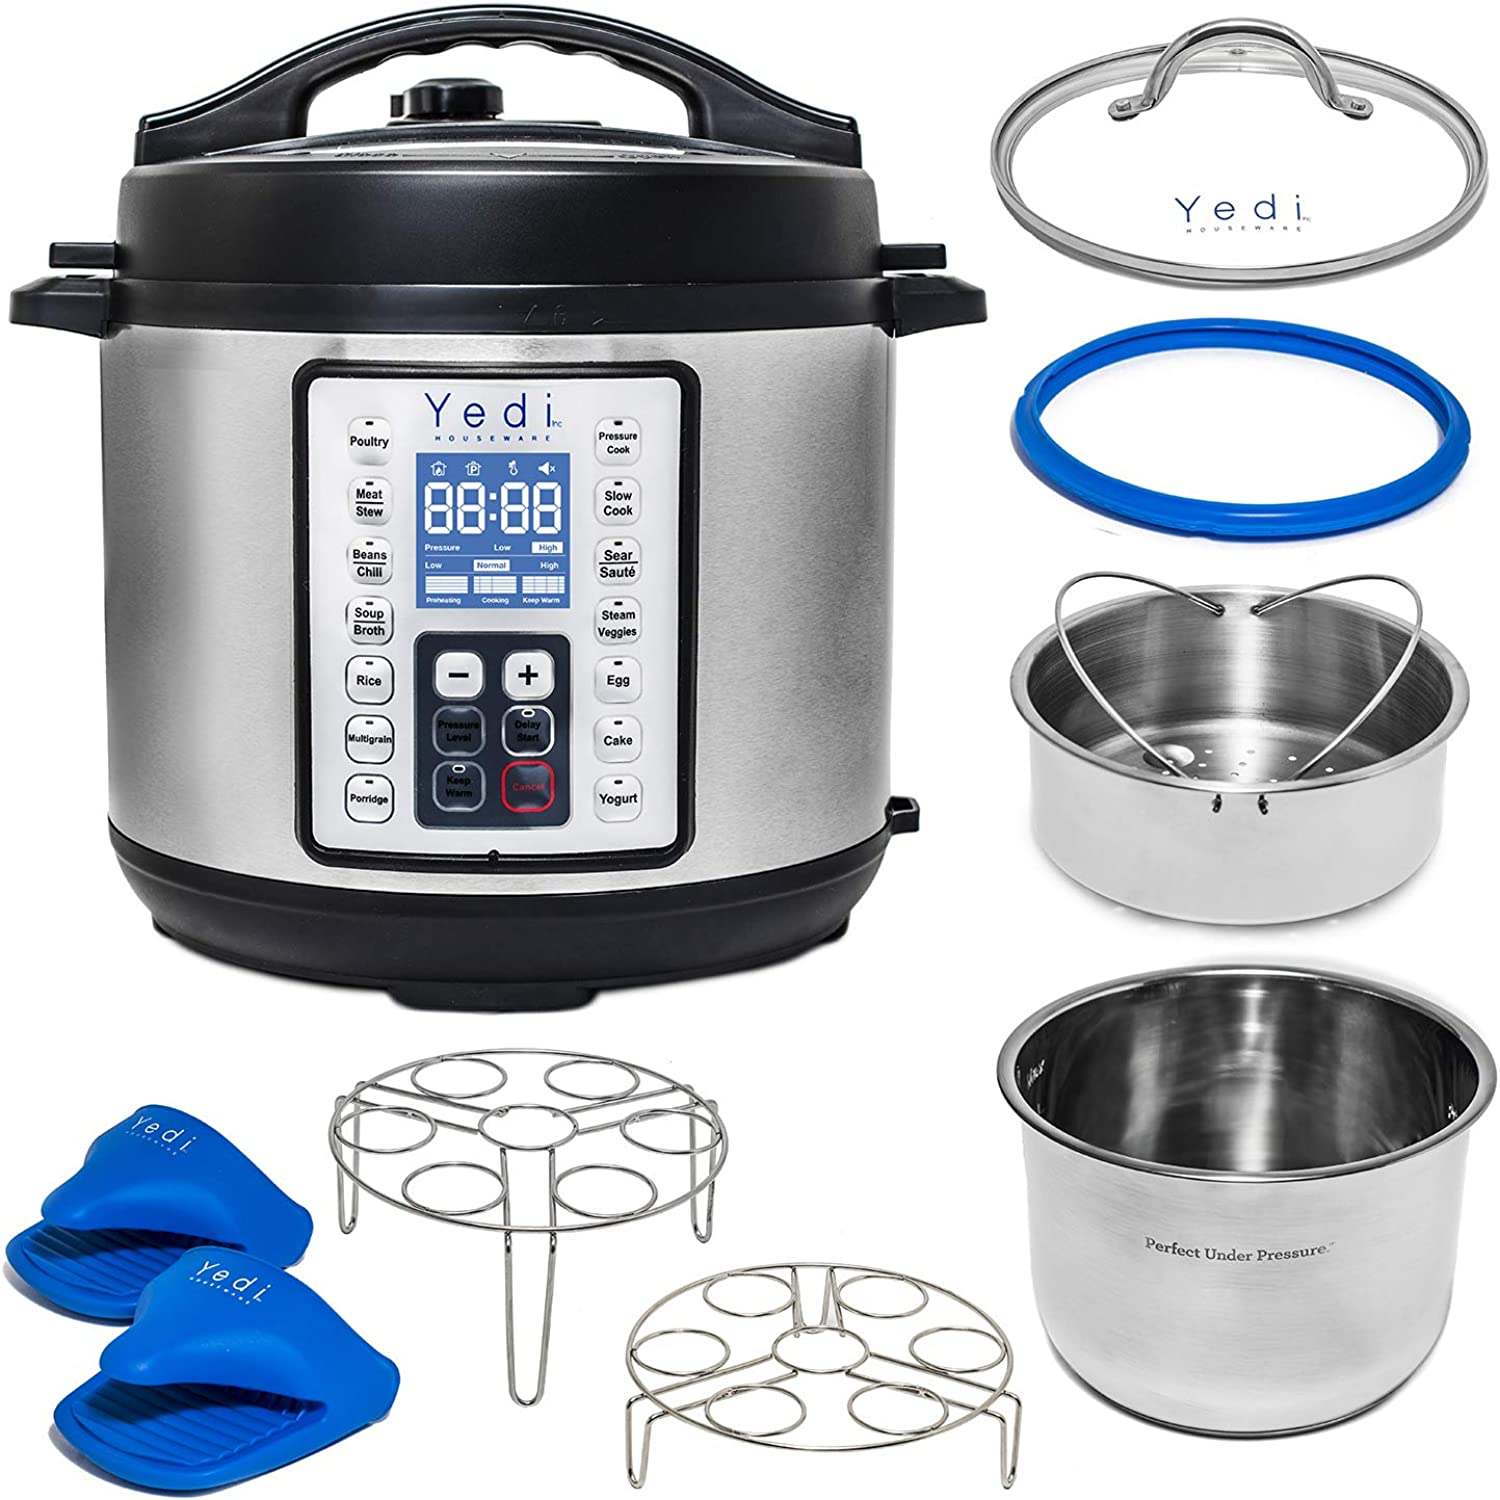 Yedi Total Package 8 Qt 9-in-1 Instant Programmable XL Pressure Cooker, Deluxe Accessory Kit, Recipes & 2Yr Warranty. Pressure Cook, Slow Cook, Sauté, Egg, Rice Cooker, Yogurt, Steamer, Hot Pot